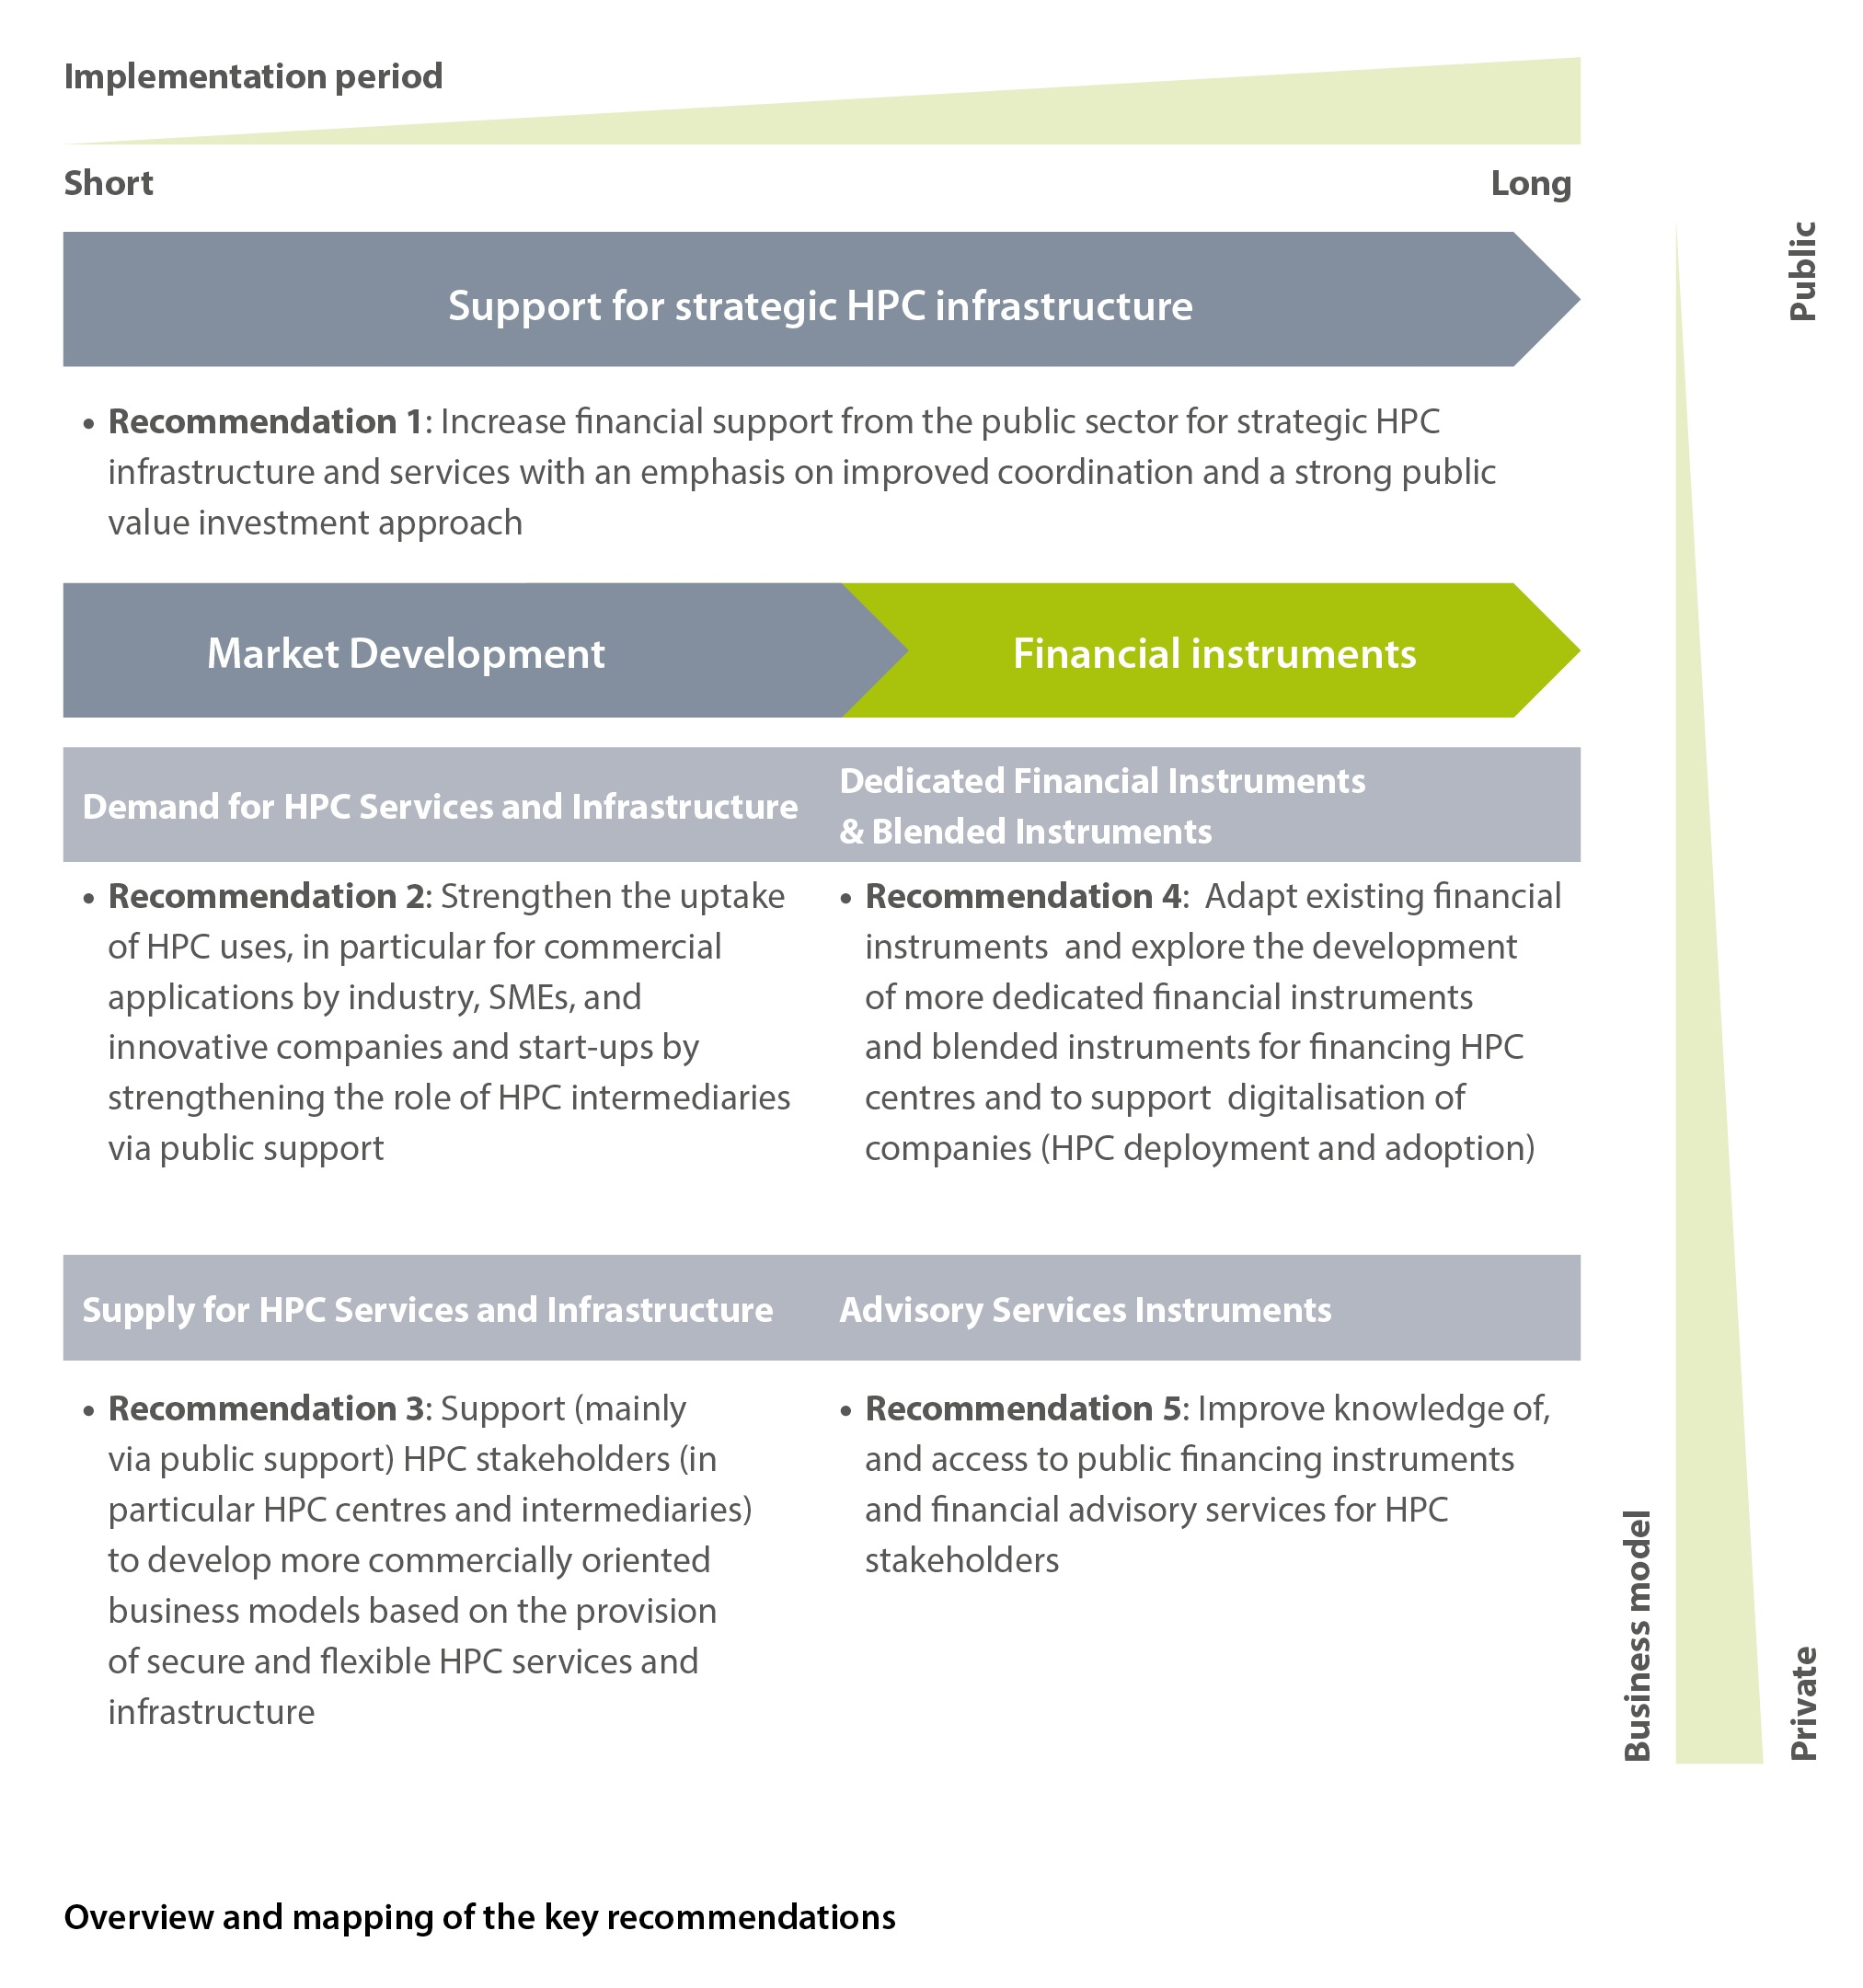 overview and mapping of the key recommendations